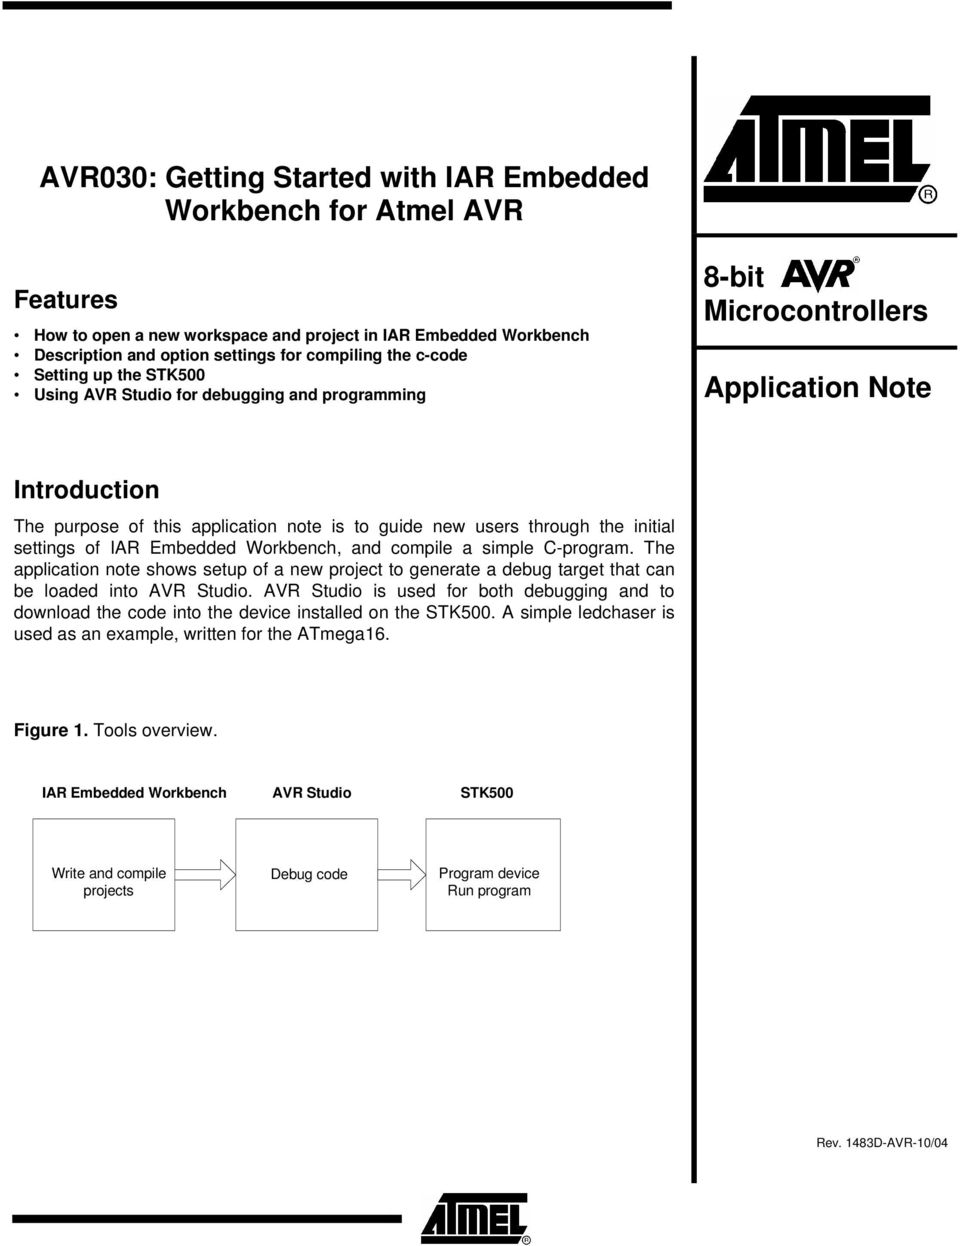 initial settings of IAR Embedded Workbench, and compile a simple C-program. The application note shows setup of a new project to generate a debug target that can be loaded into AVR Studio.